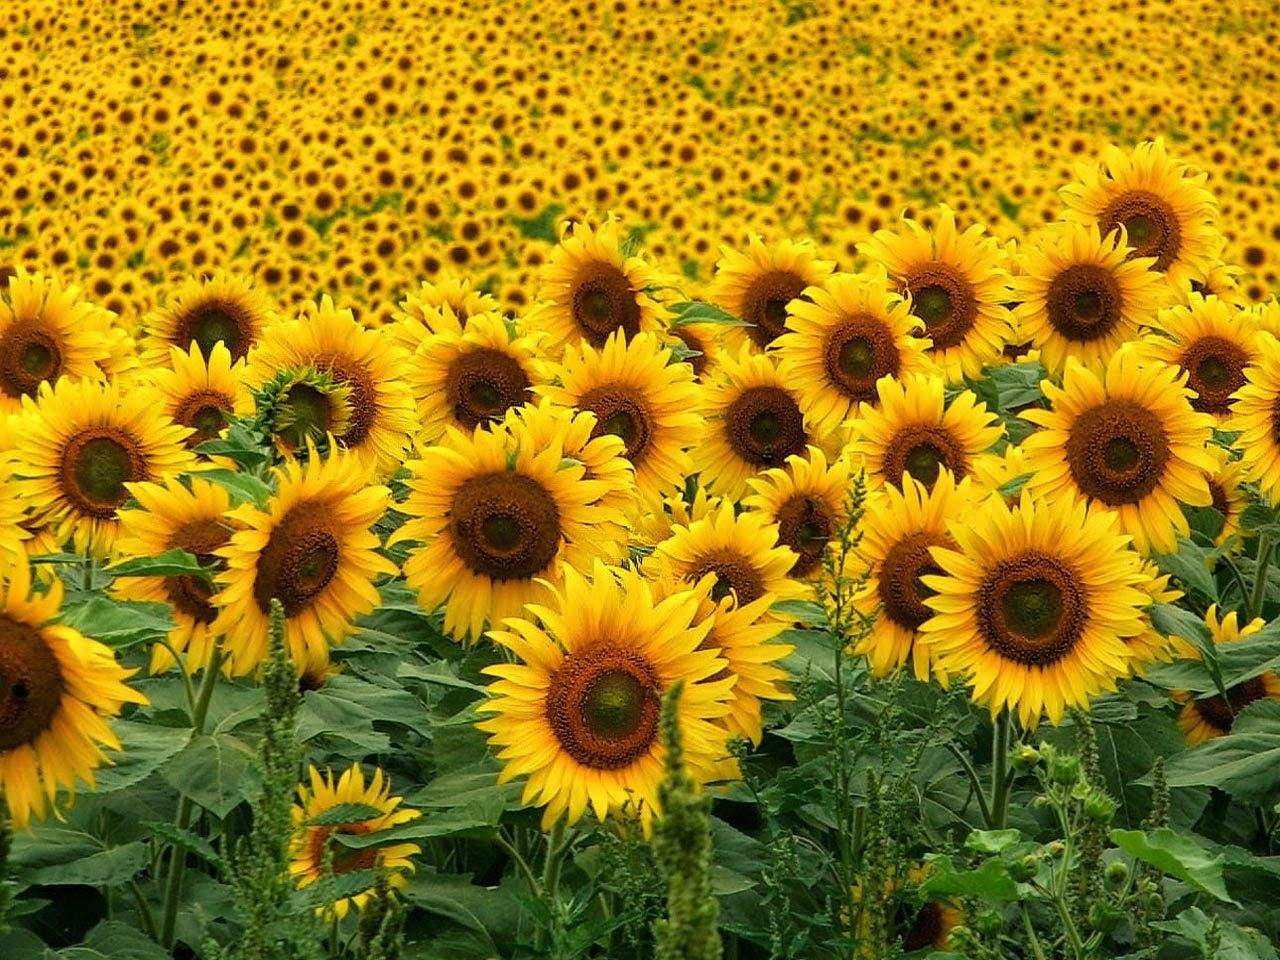 Picture Of Sunflowers Hd Pictures Best Flower Pictures Flower Pictures Sunflower Wallpaper